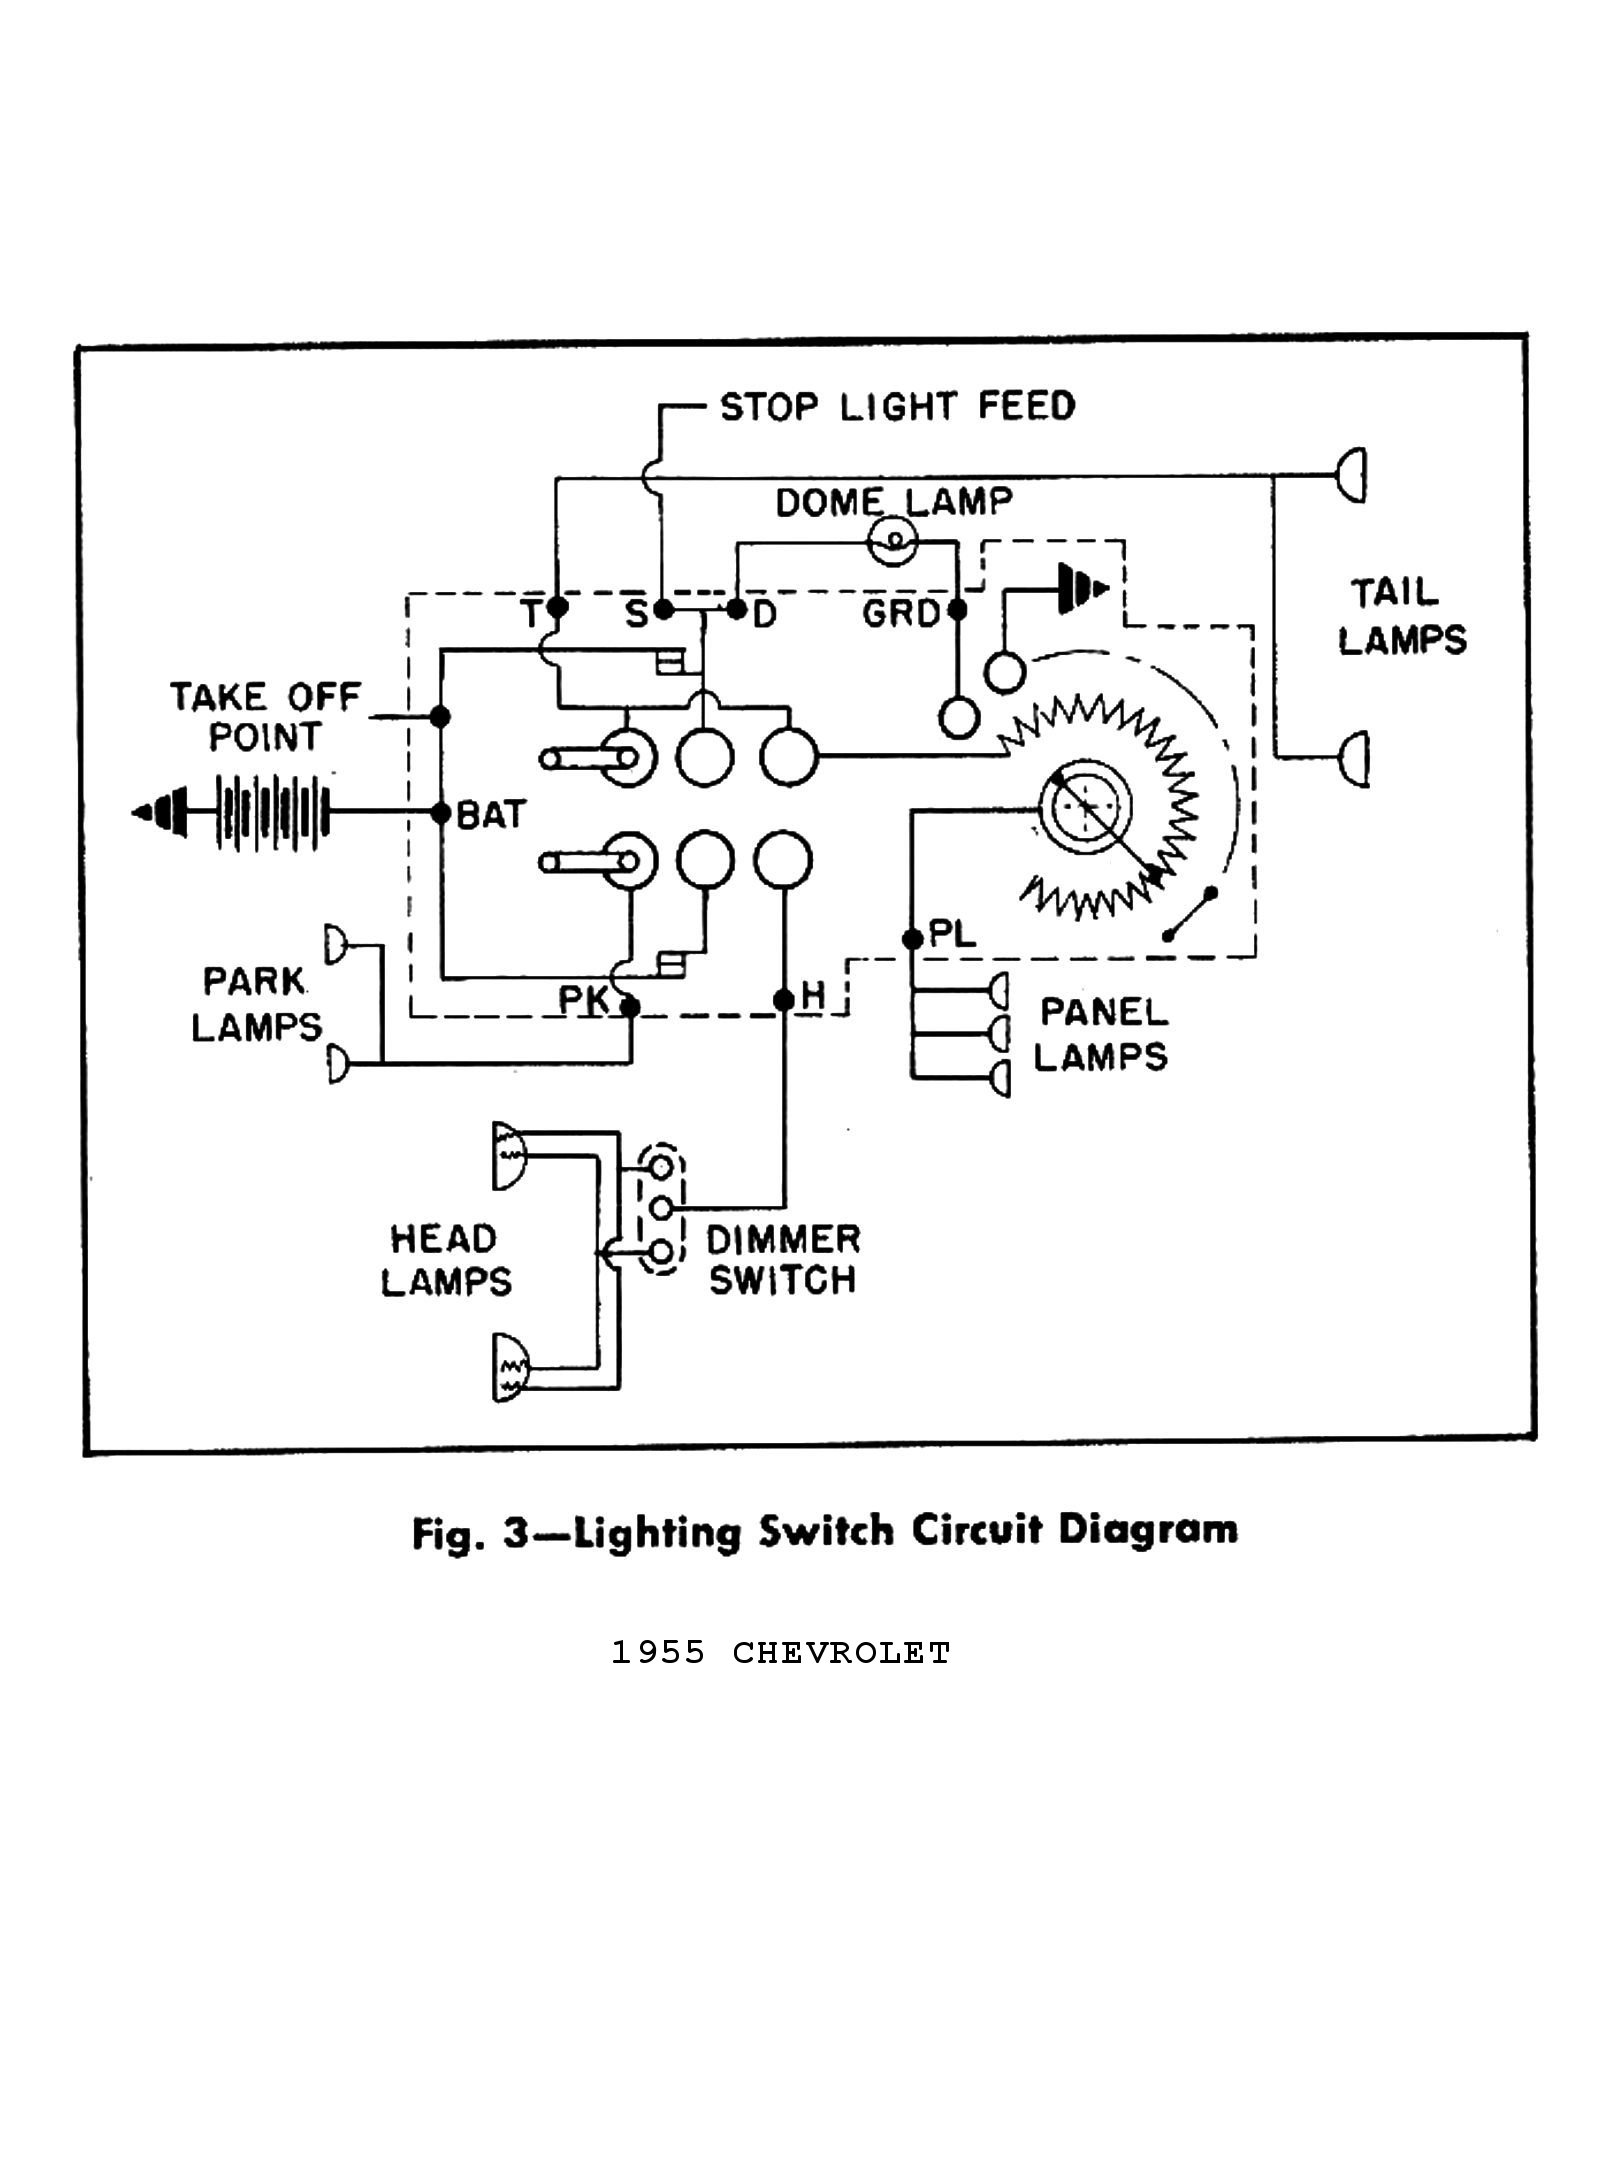 hight resolution of arr ignition switch wiring diagram wiring diagram preview 1941 chrysler ignition switch wiring